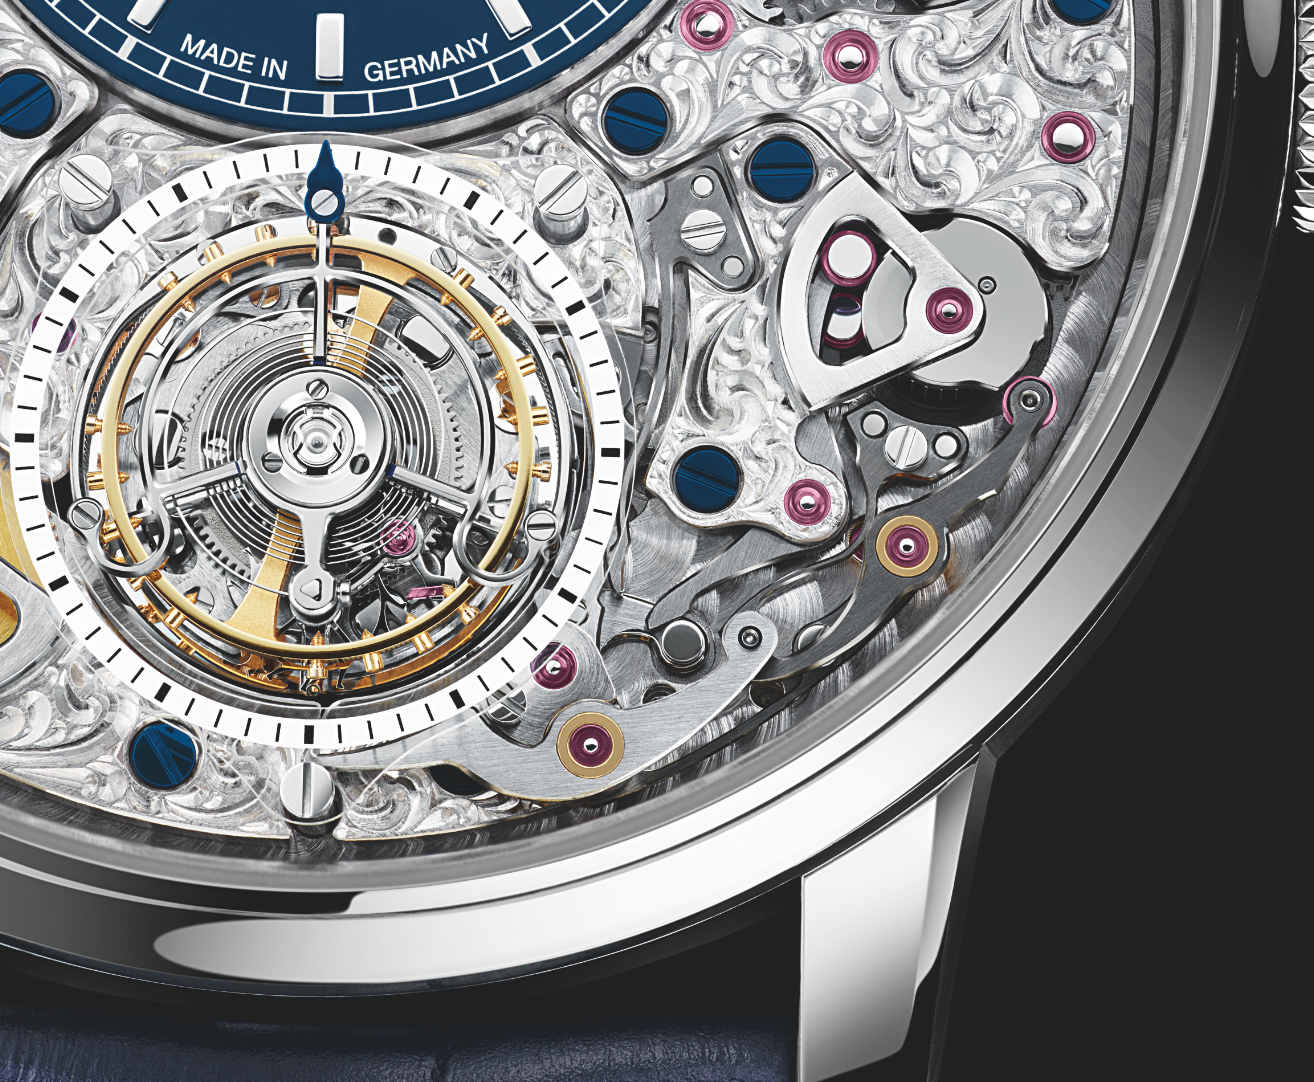 From Blancpain To Breguet: The Best New Watches From Swatch Group